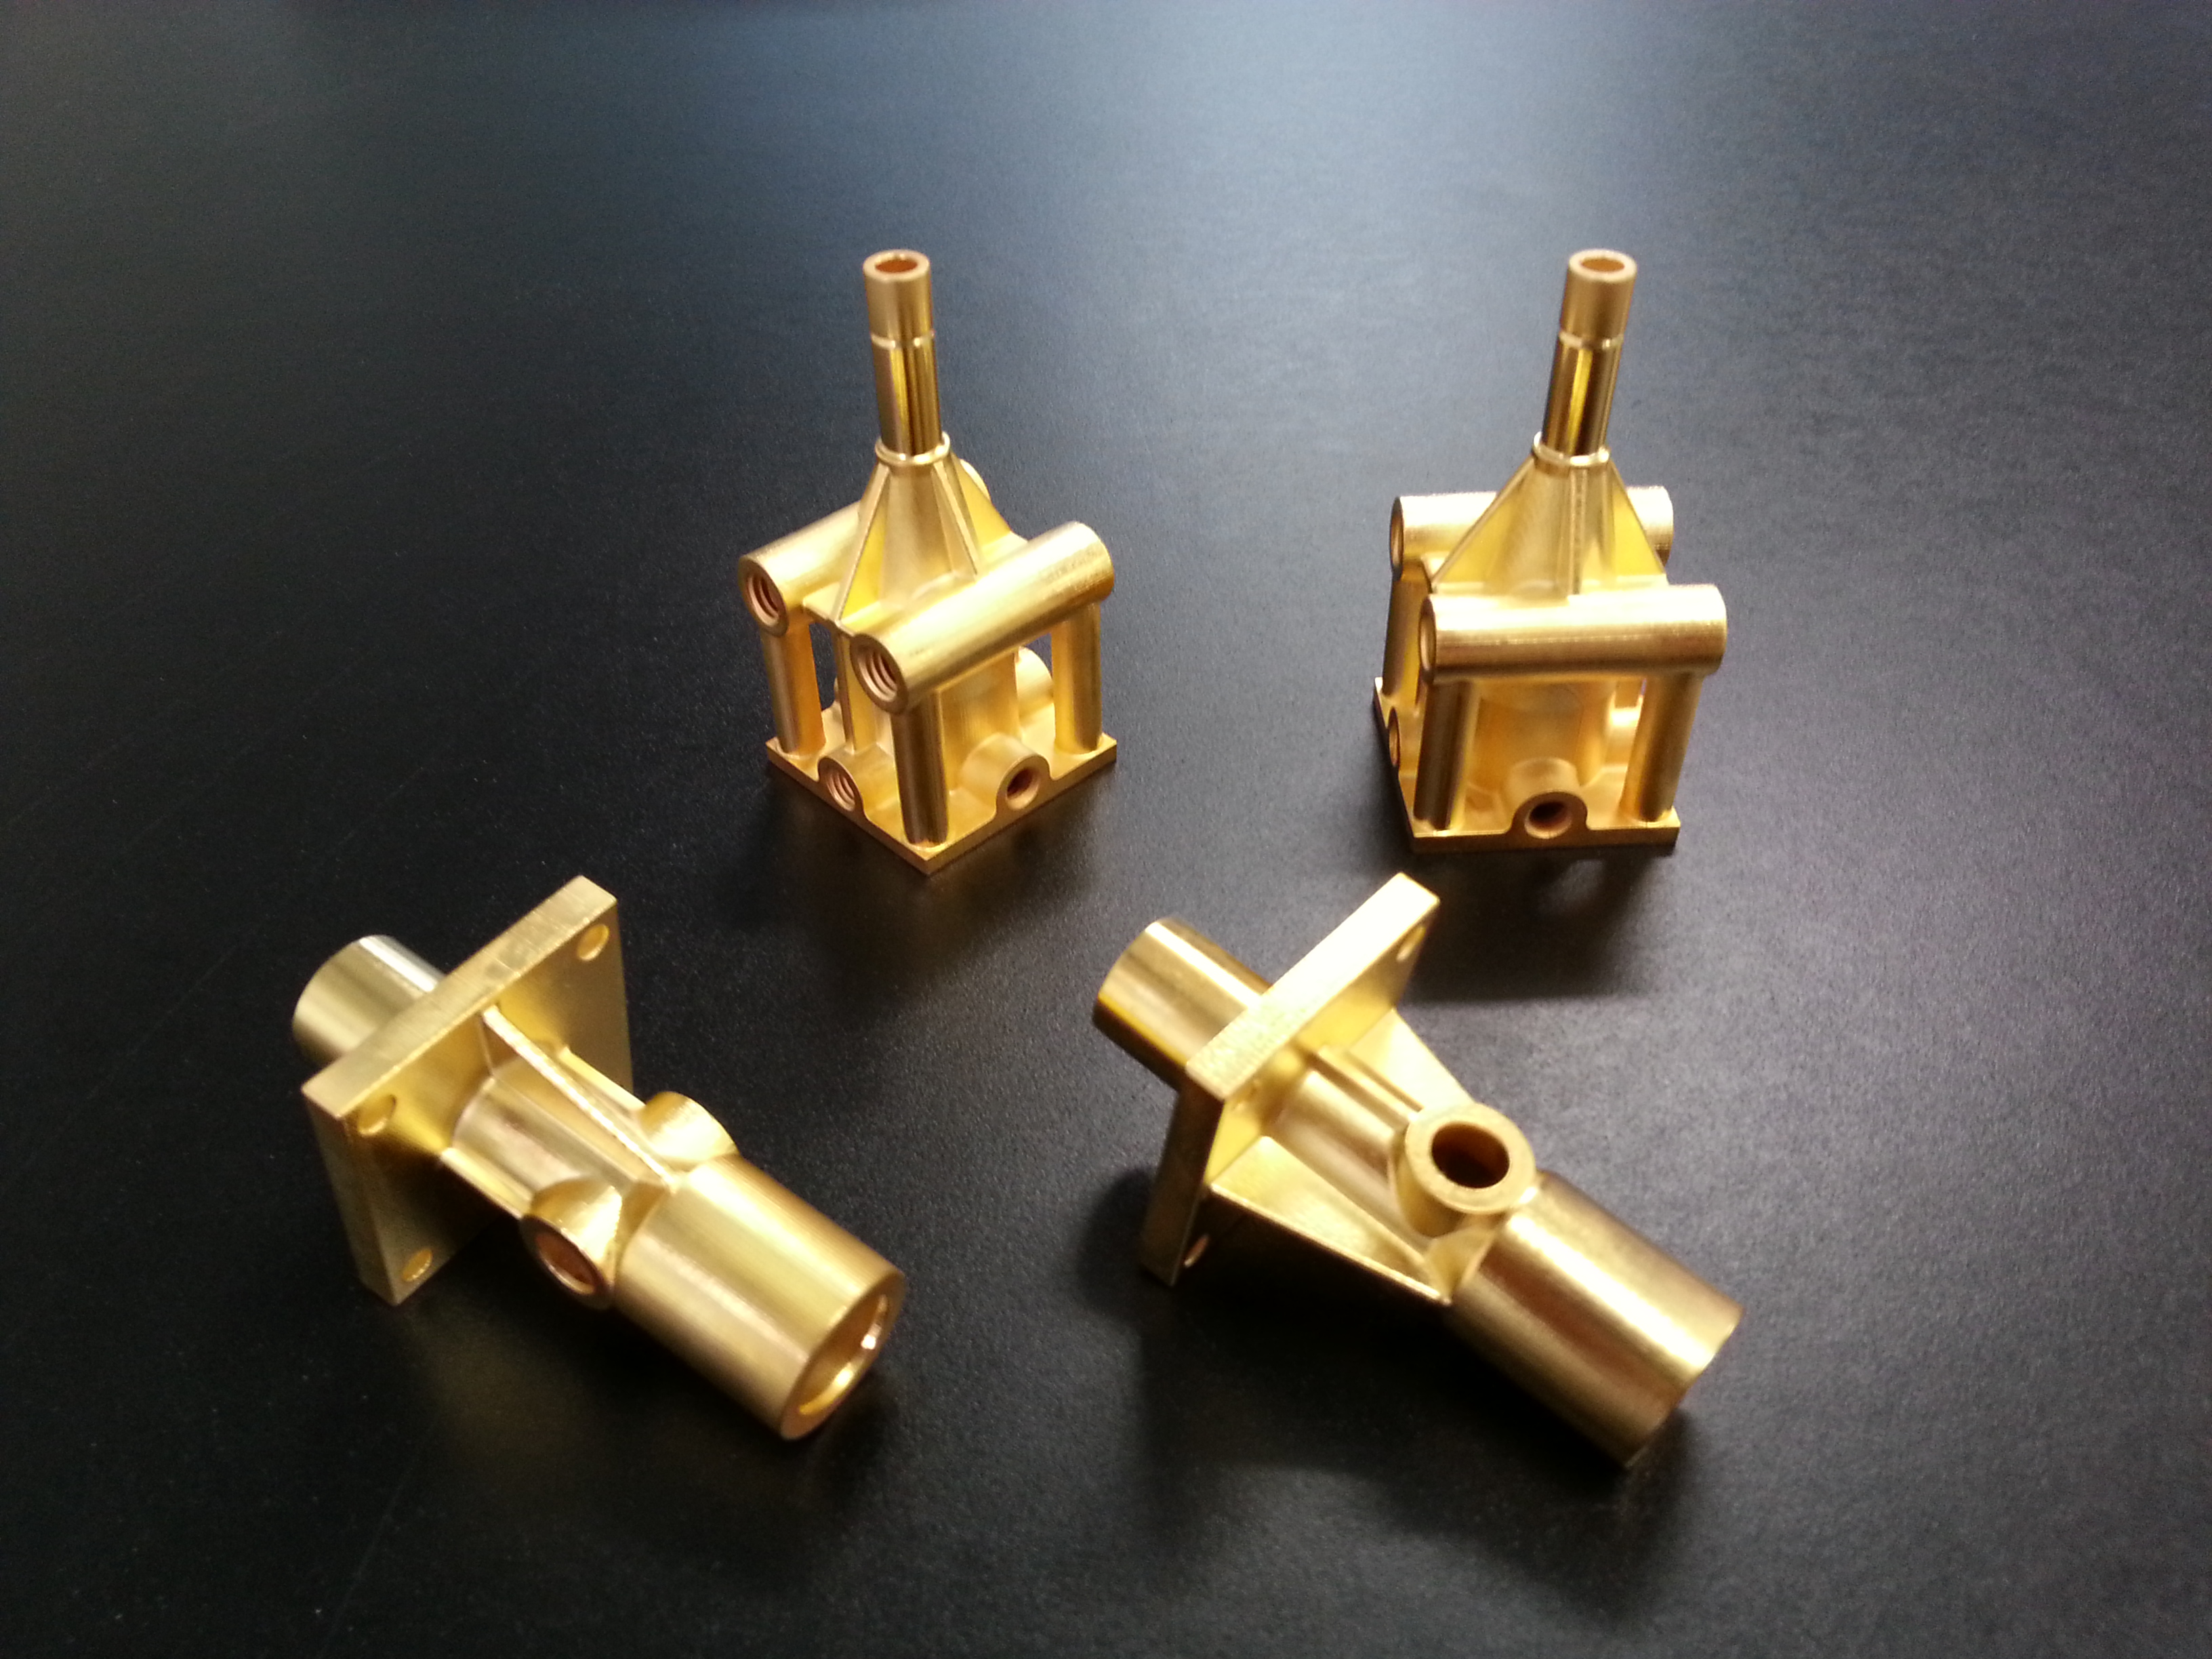 3D printed parts in gold, electroplated by the Swiss company Galvotec, one of few in the world specializing in metal coating for rapid prototyping. Electroplating is used to improve appearance and material properties such as strength and electrical conductivity.